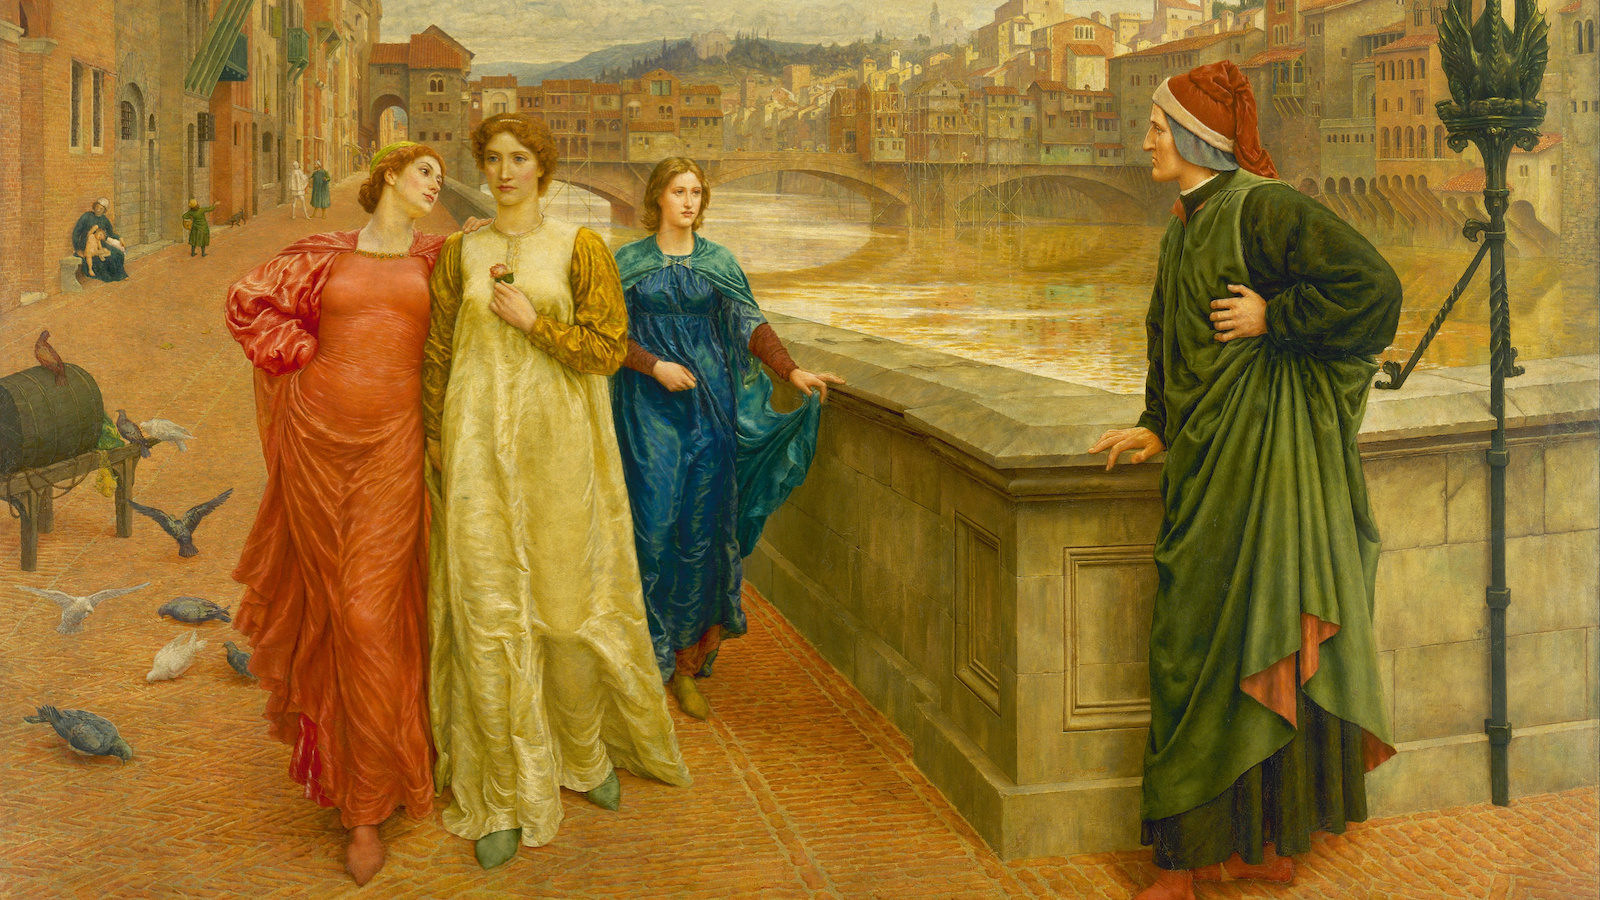 """Henry Holiday, """"Dante and Beatrice,"""" 1883, oil on canvas. Public domain image."""